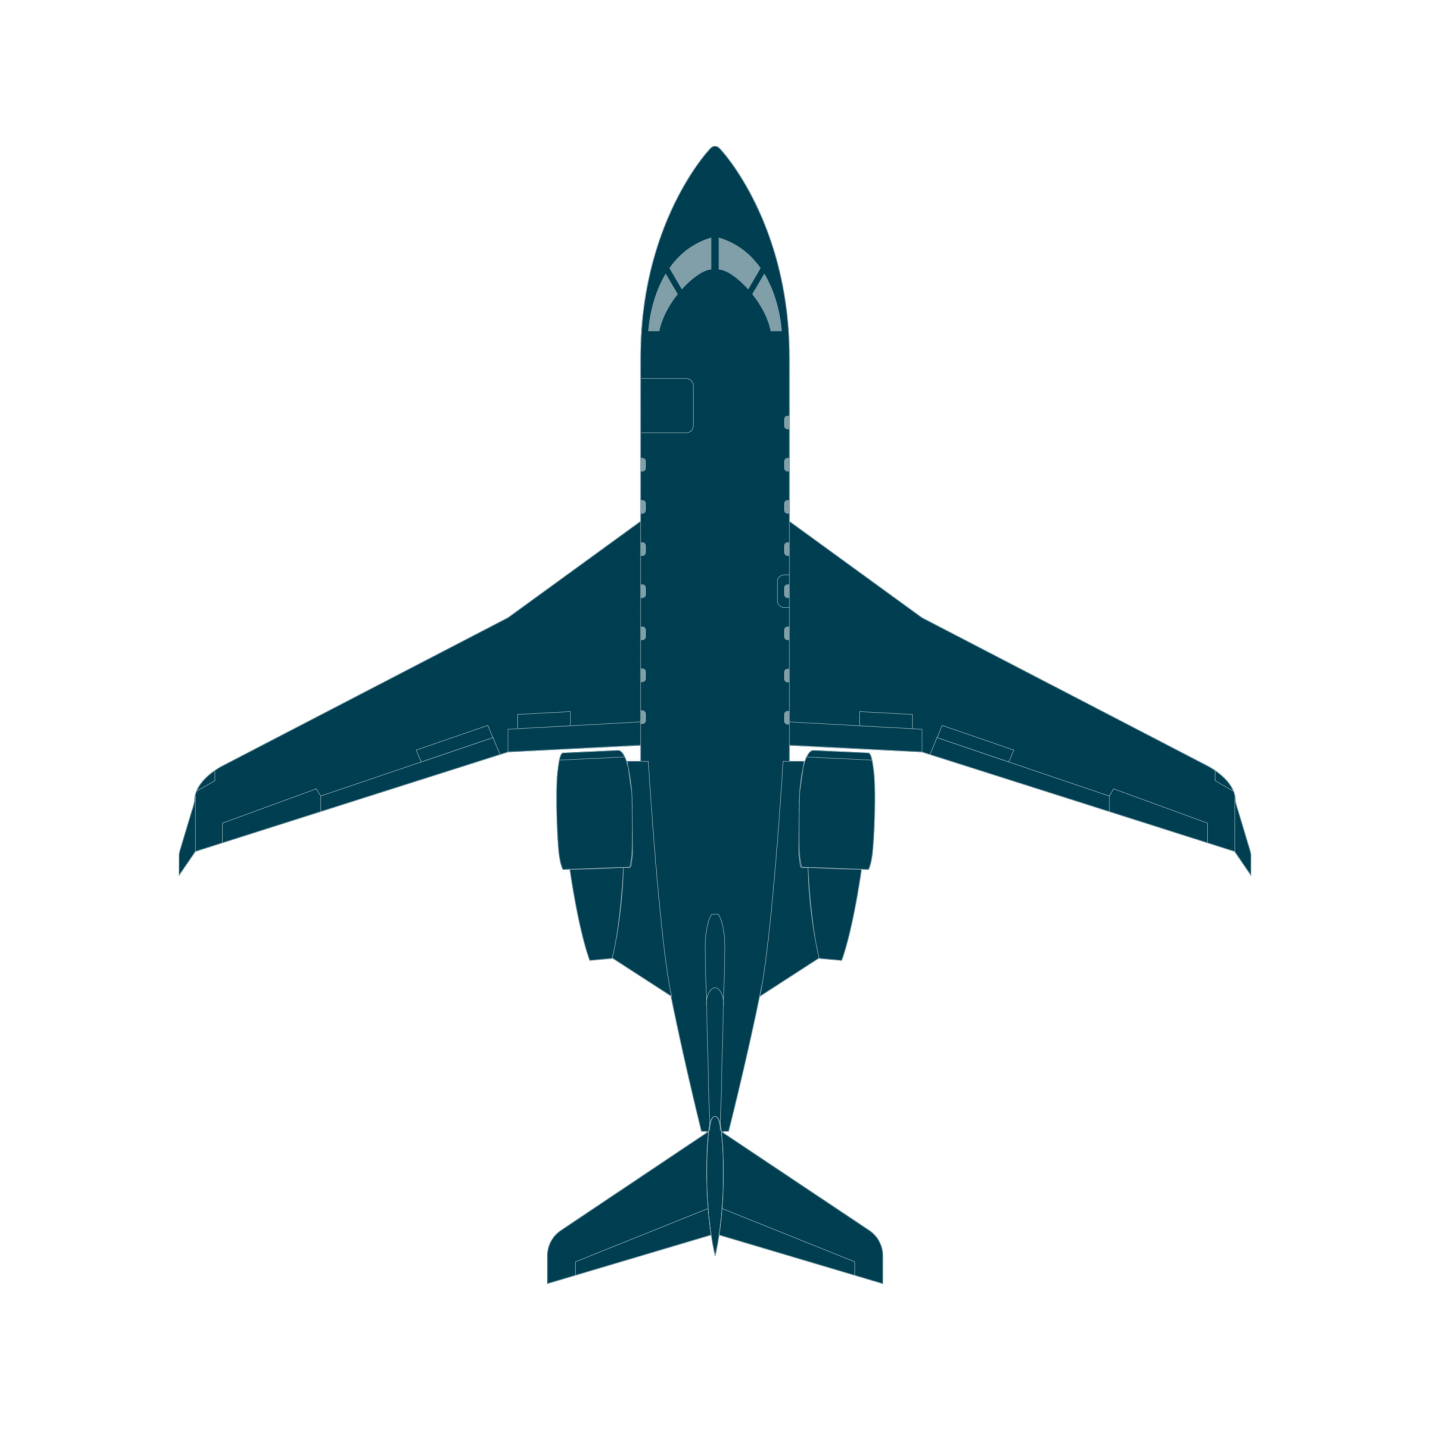 Jet clipart top view, Jet top view Transparent FREE for.